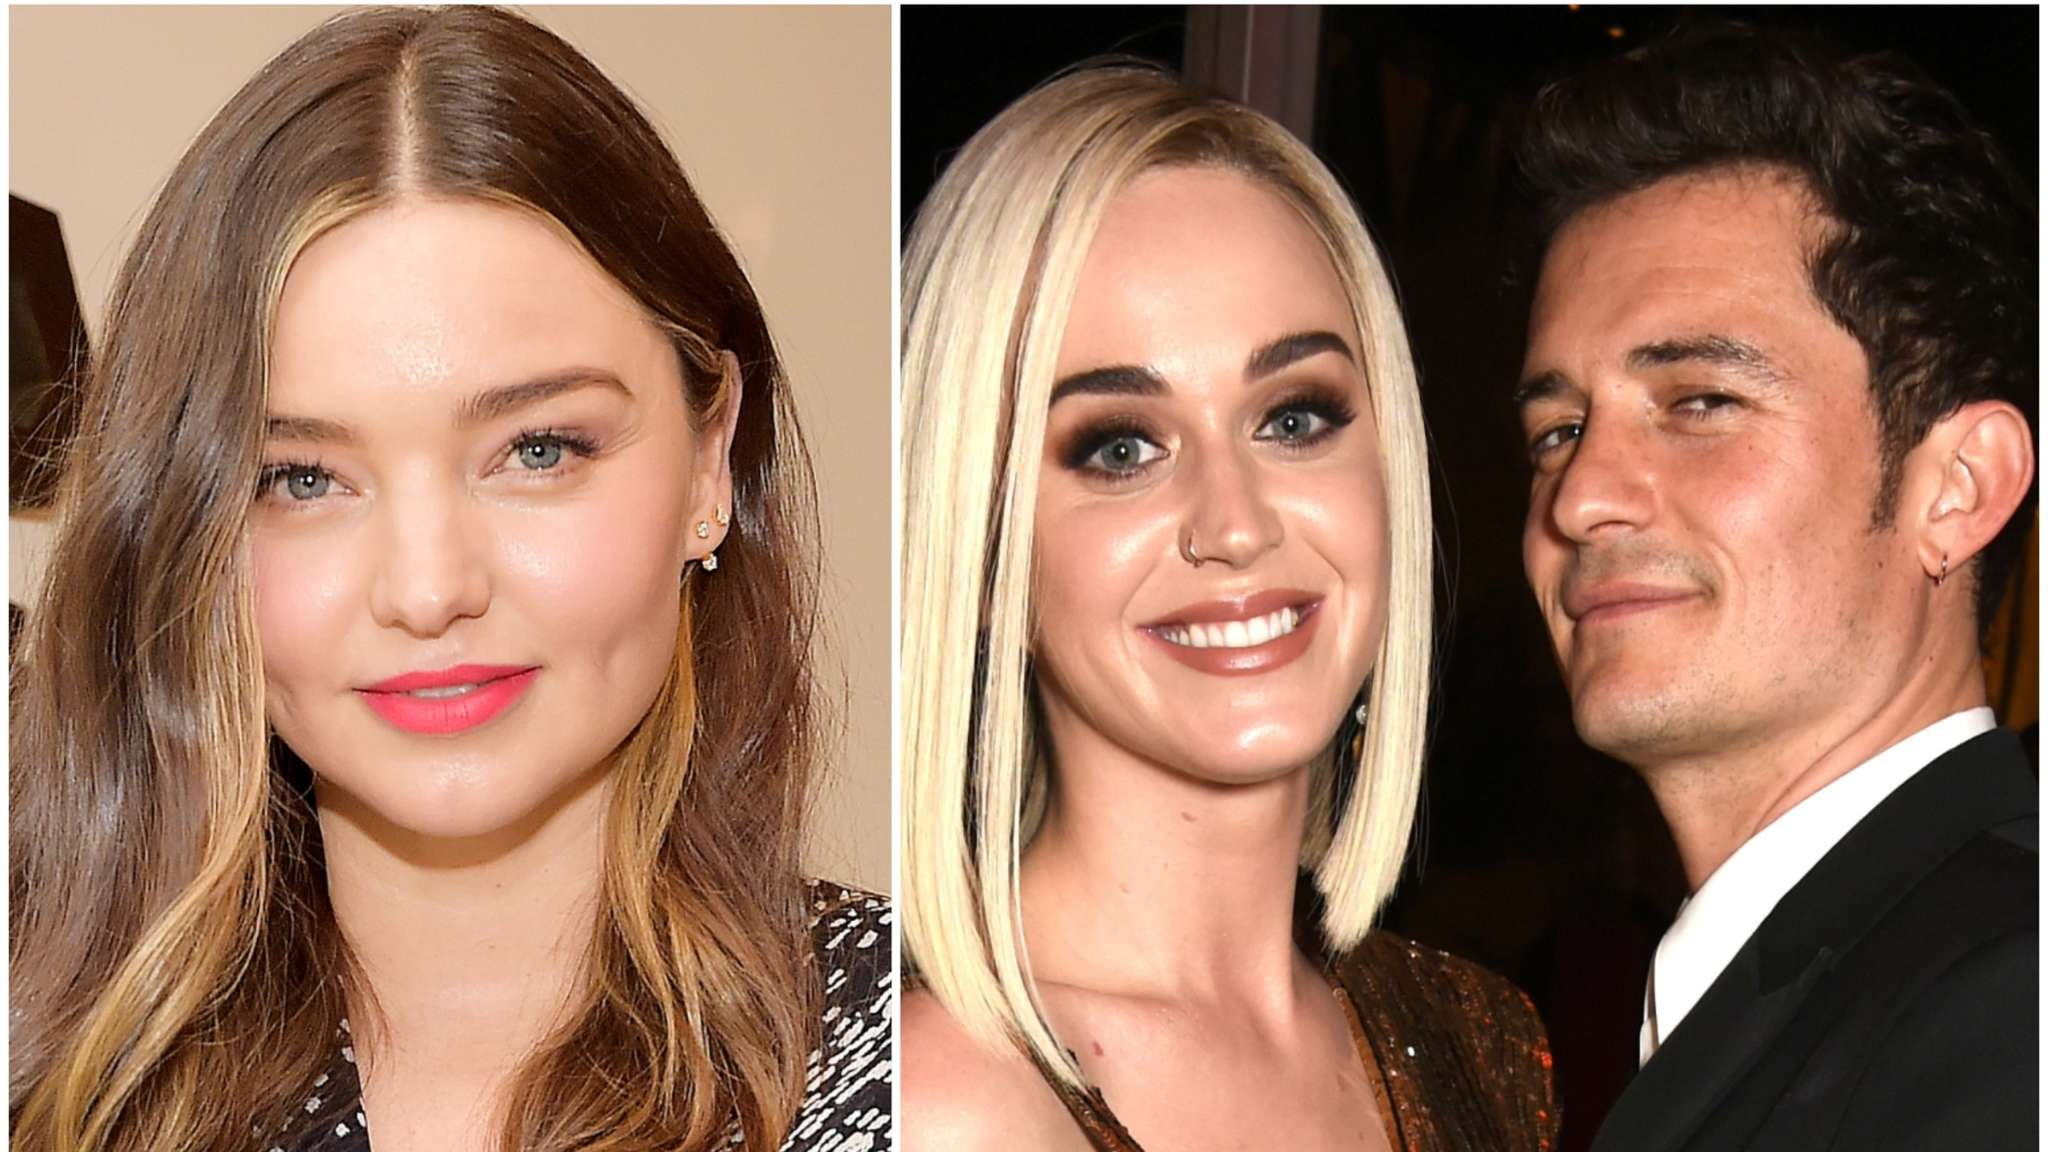 Miranda Kerr Says She 'Adores' Katy Perry – Here's Why She's So Happy Her Ex, Orlando Bloom Has Found The Singer!